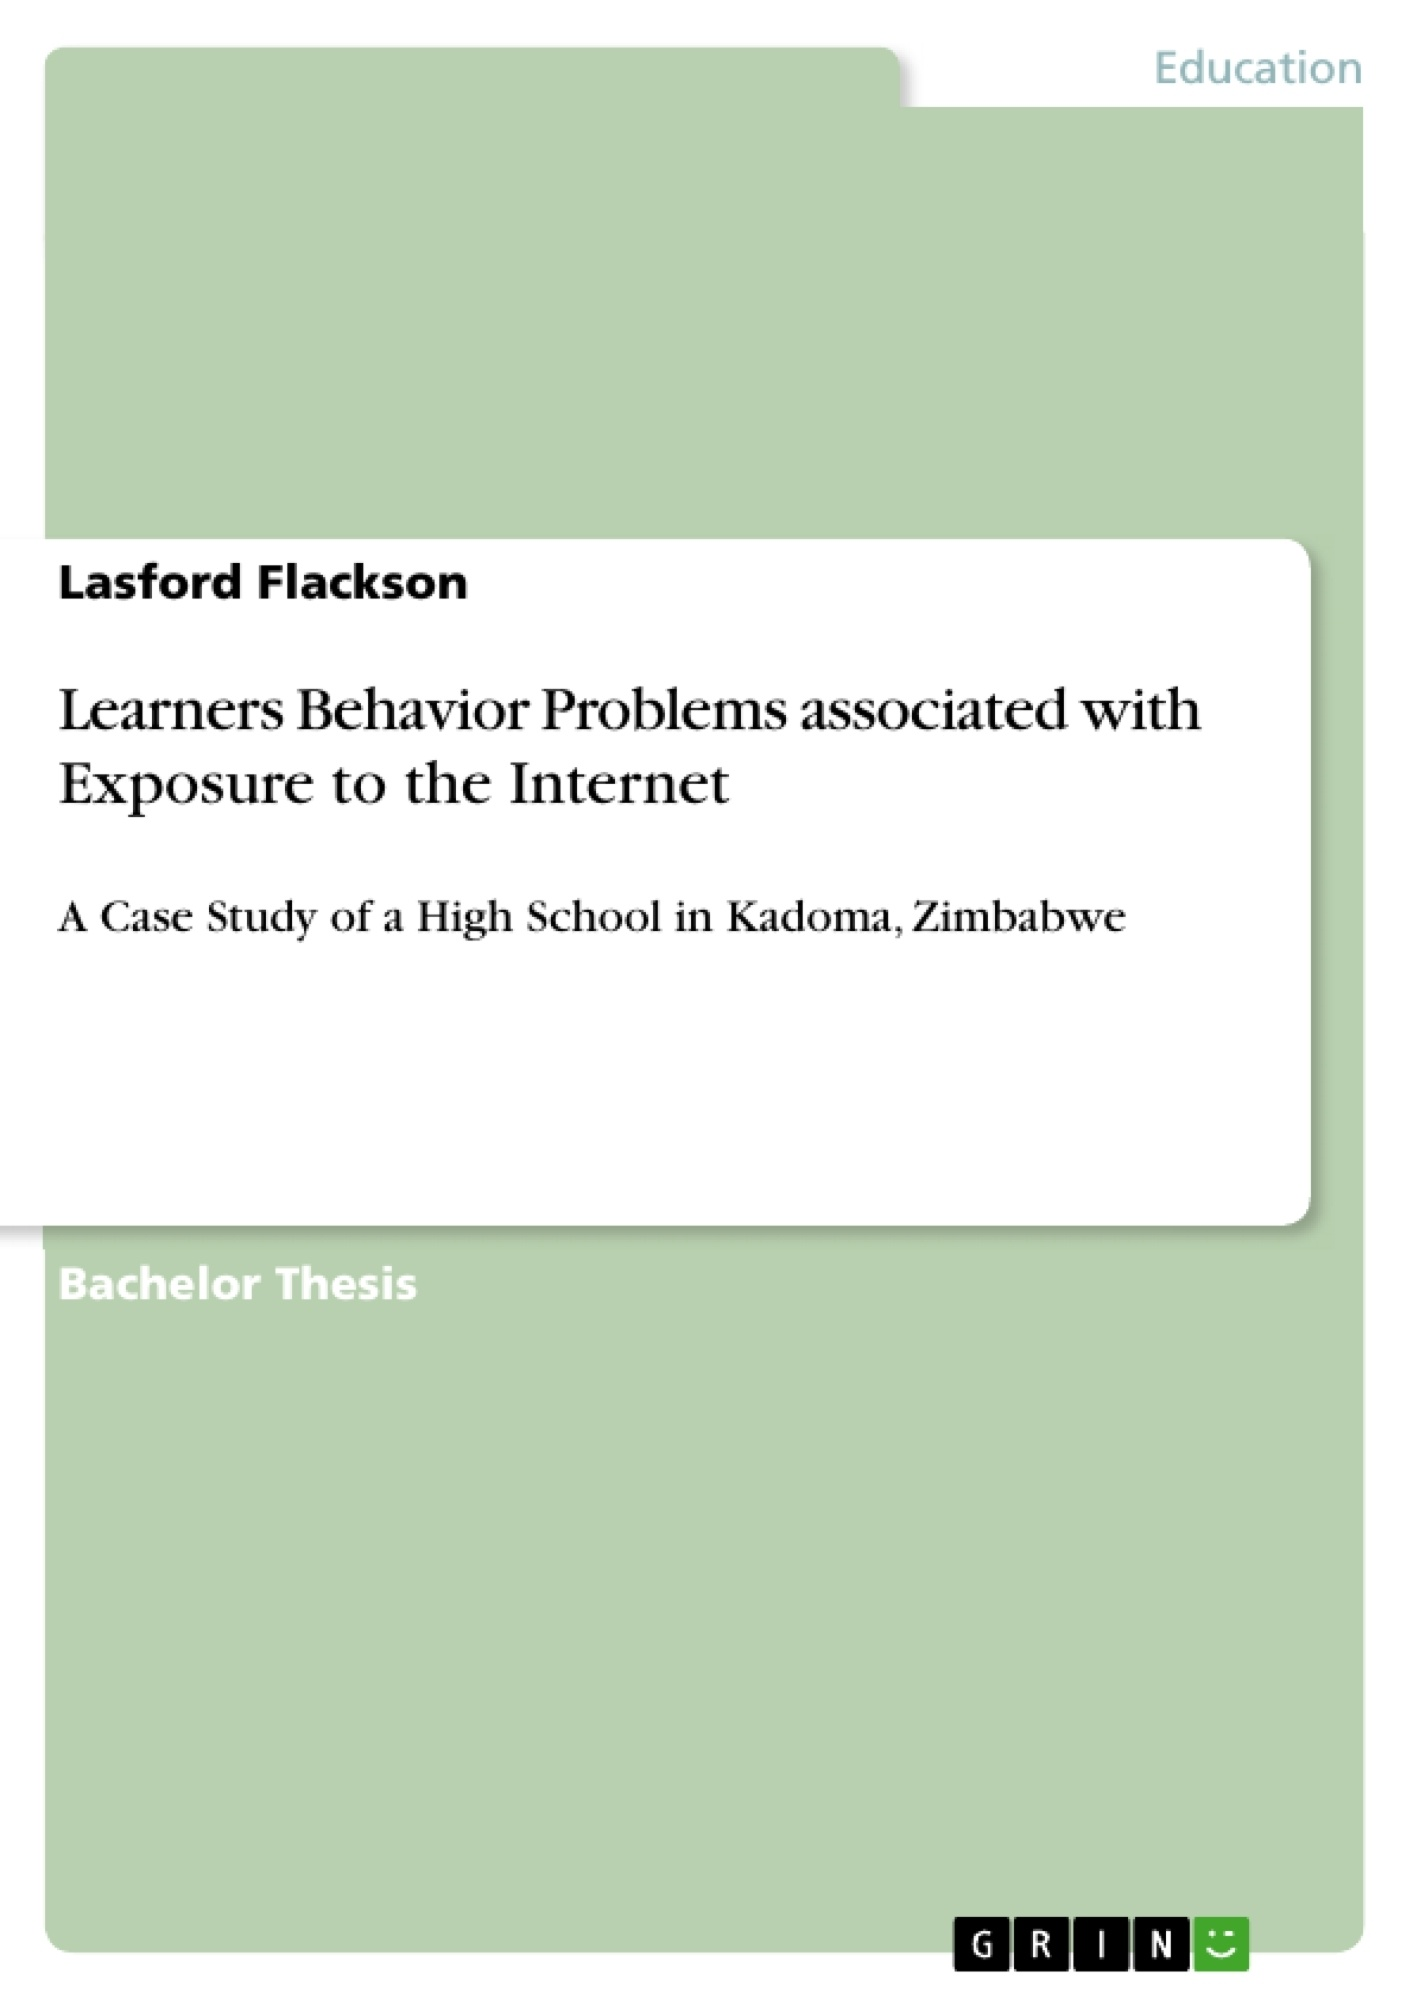 Title: Learners Behavior Problems associated with Exposure to the Internet